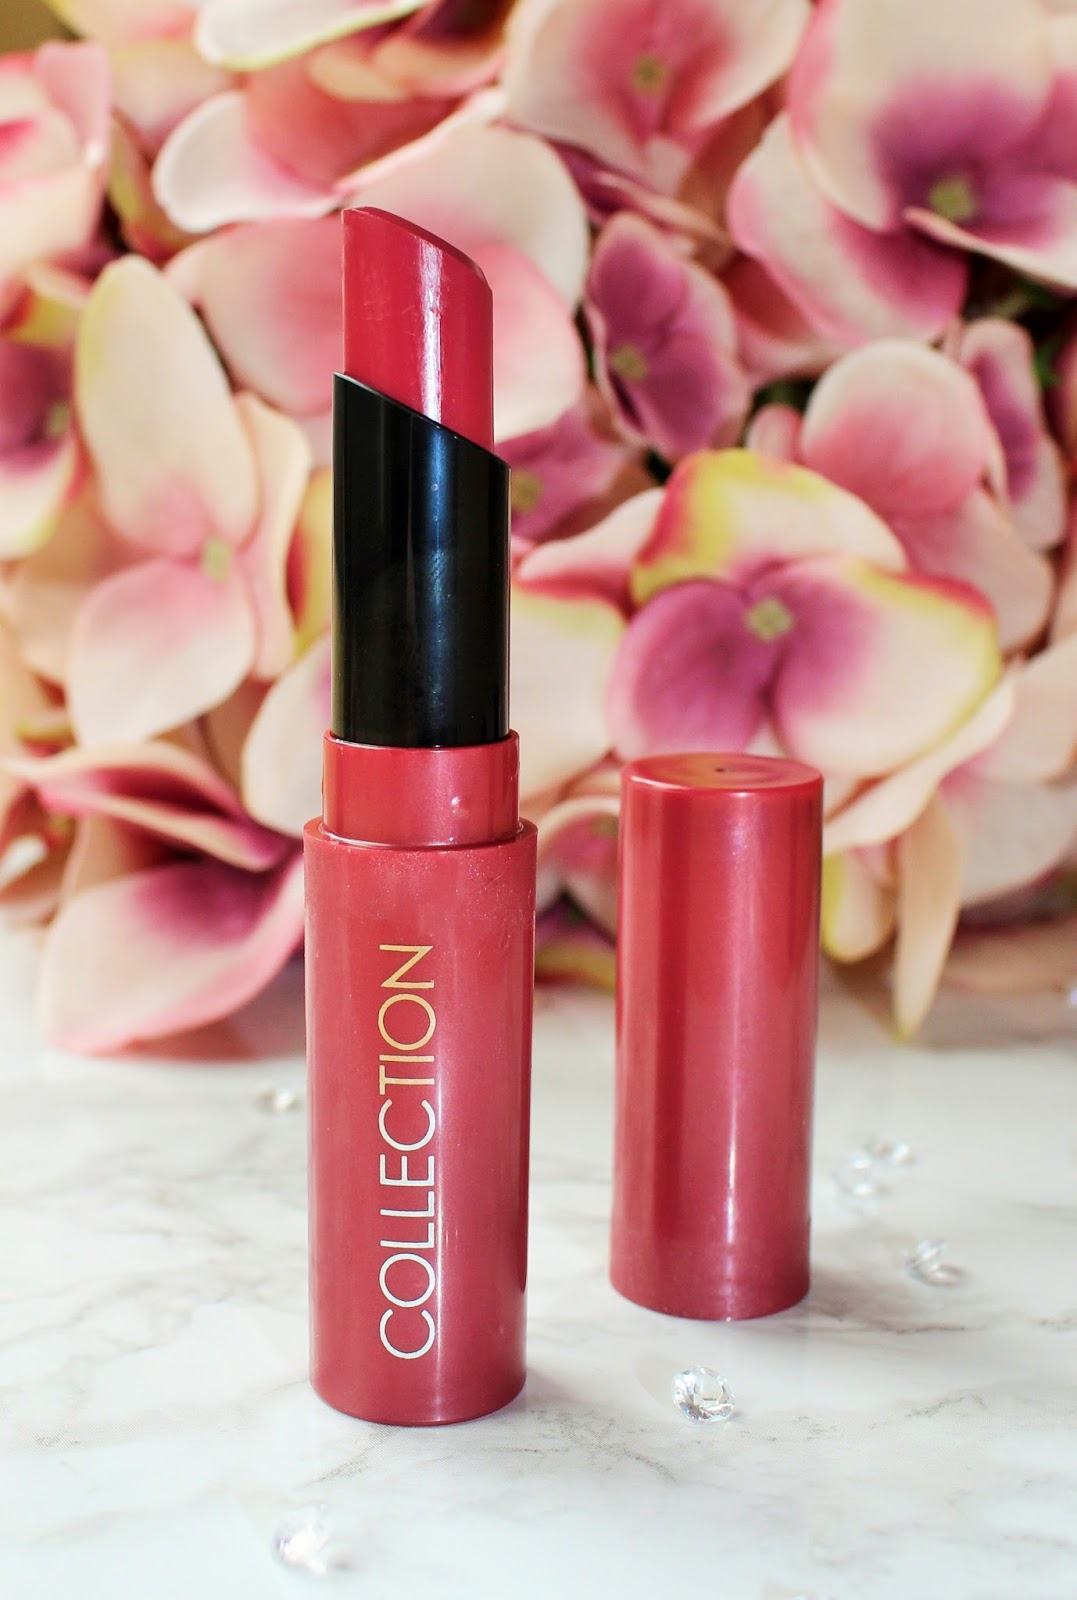 My Favourite Lip Care Products - 7 - Collection Lip Colours SPF 15 in Berry Blush